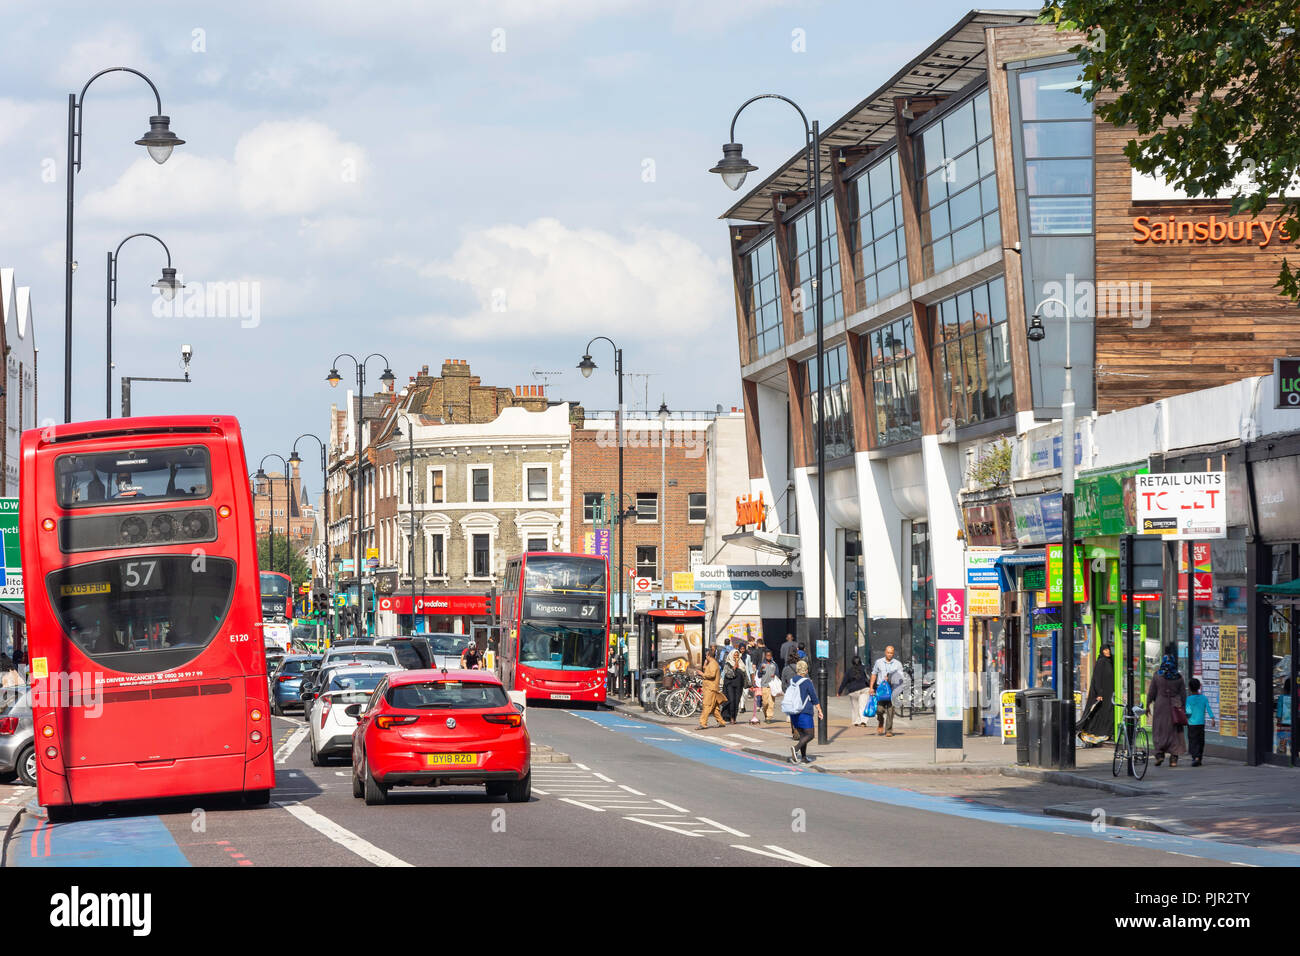 Tooting High Street, Tooting, London Borough of Wandsworth, Greater London, England, United Kingdom - Stock Image